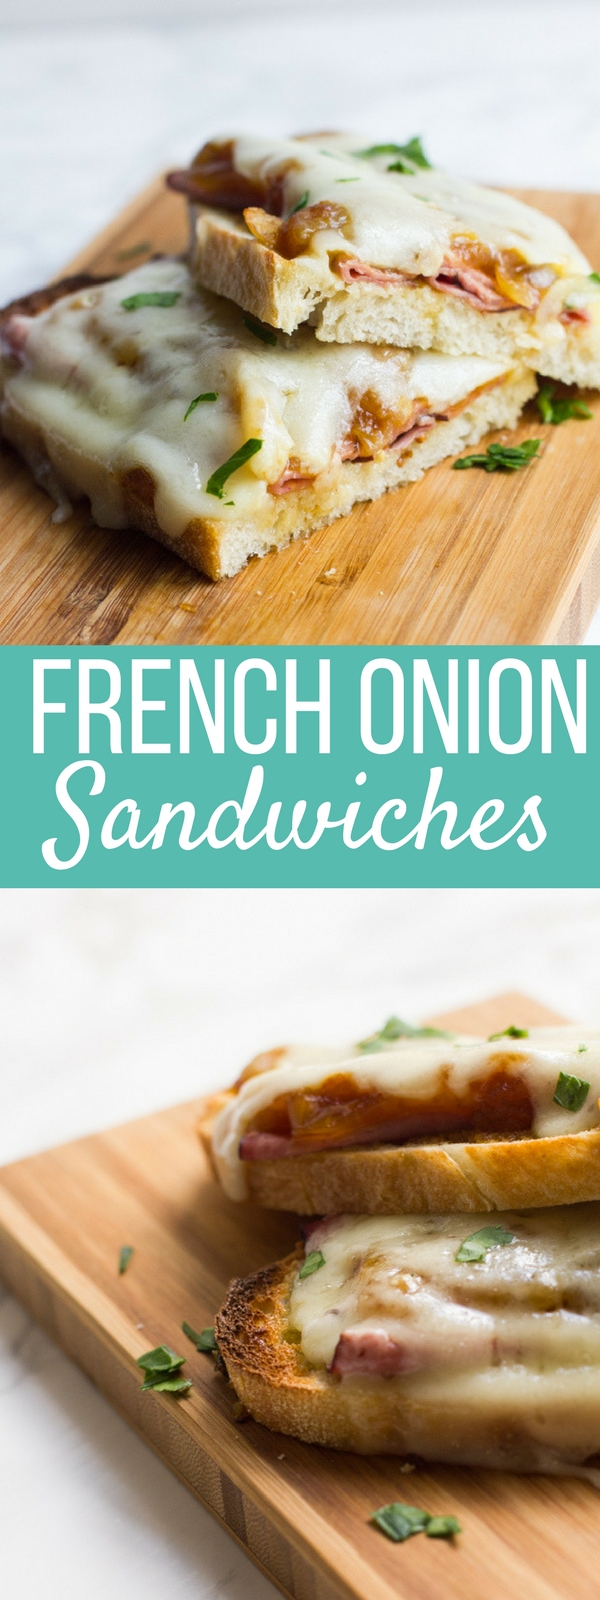 This recipe is all of the goodness of a french onion soup on a sandwich with flavors of roast beef, caramelized onions and melty swiss cheese!